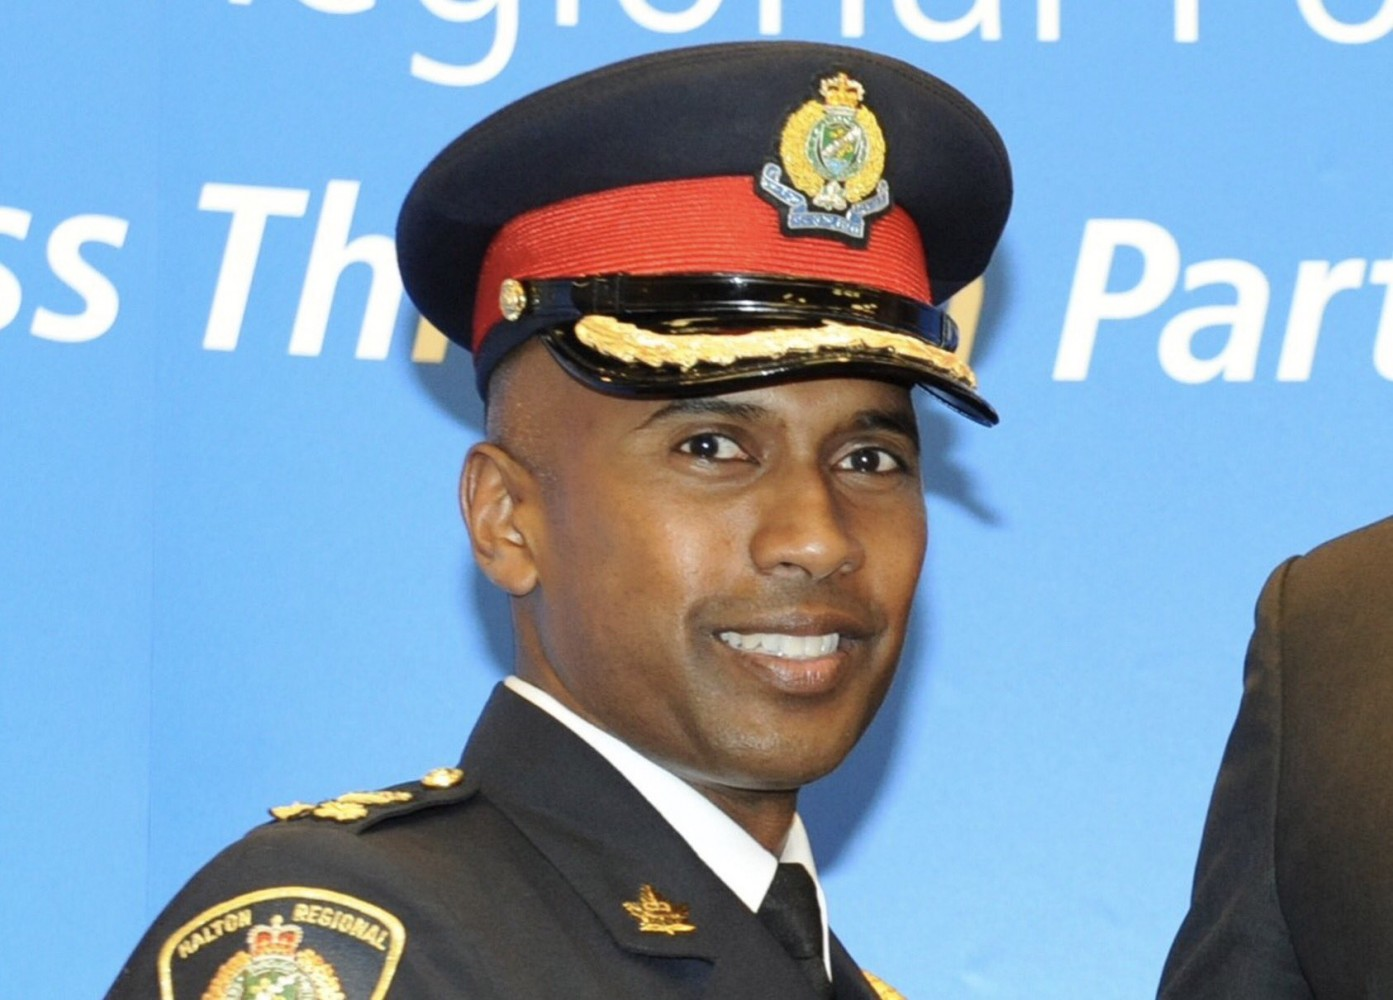 Incoming chief talks priorities and vision for Peel police